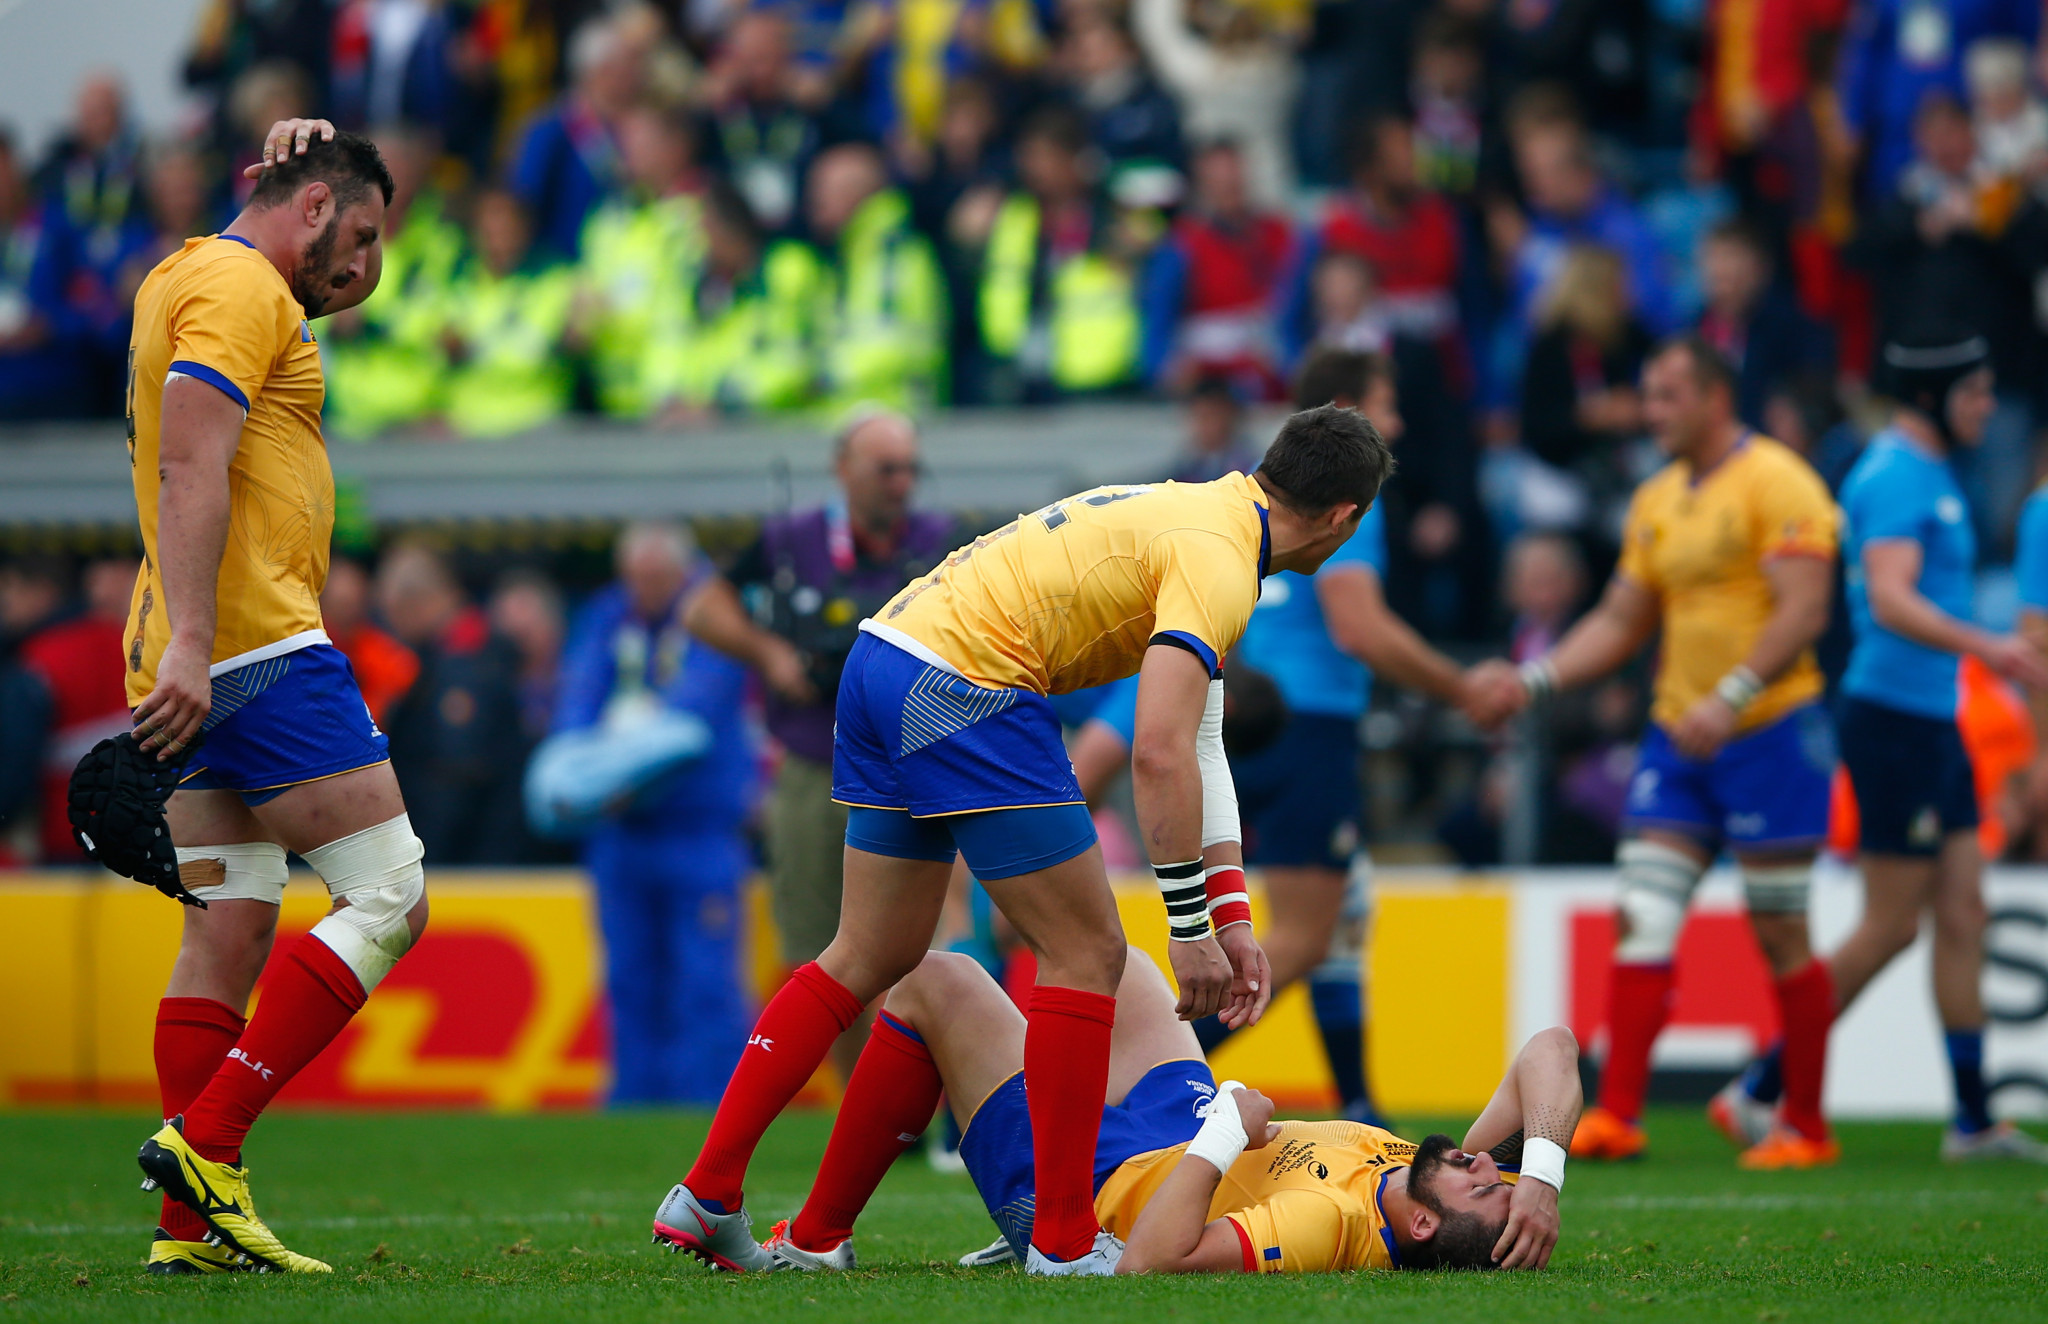 Romania booted from Rugby World Cup over ineligible players